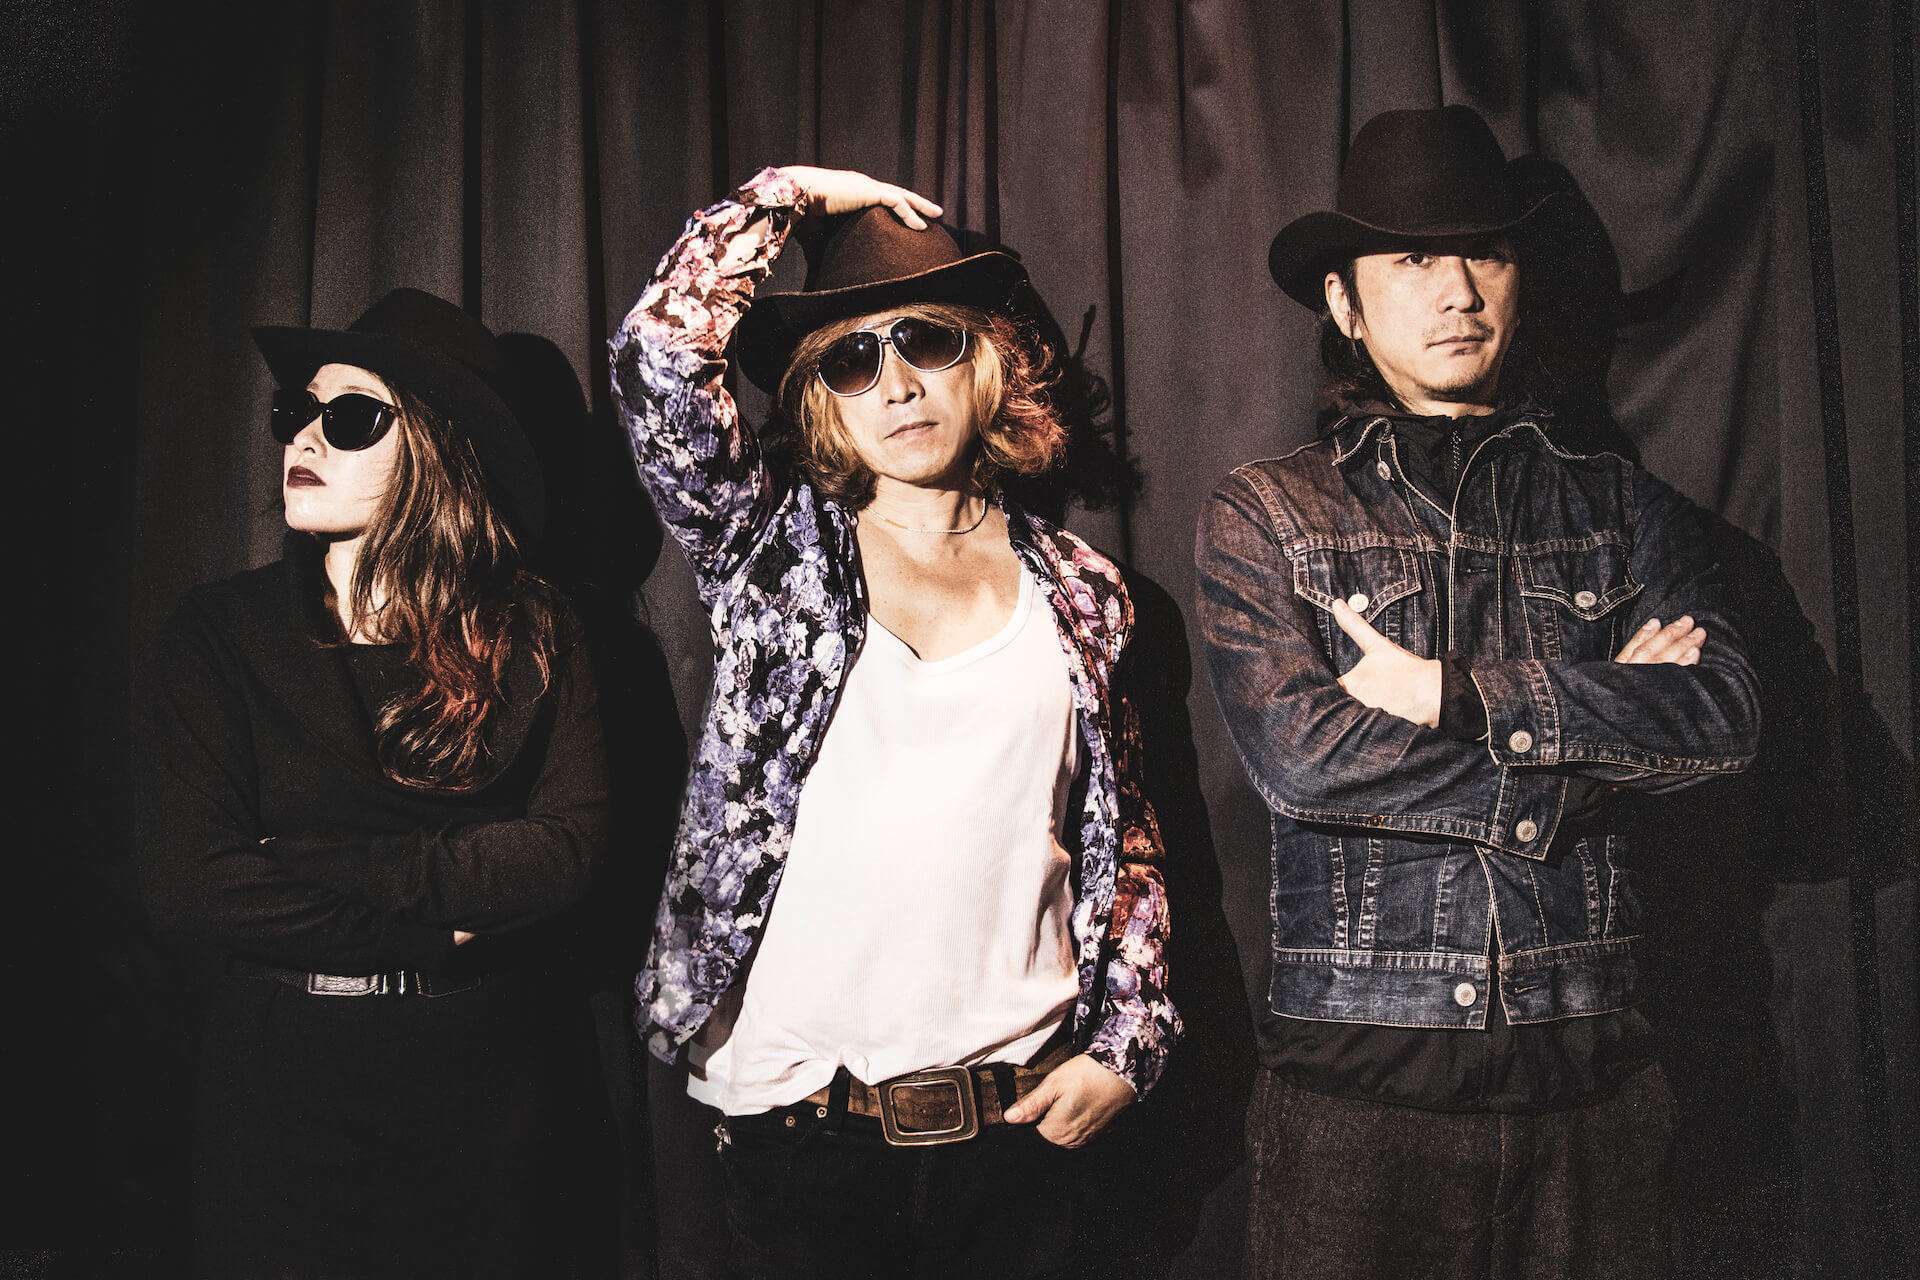 Suchmos『The Blow Your Mind TOUR 2020』対バン&ゲスト第一弾発表|浅井健一 & THE INTERCHANGE KILLS 、The Birthday、ペトロールズ、ceroらが参加、神奈川公演に松任谷由実がゲスト出演 music200106-suchmos-8